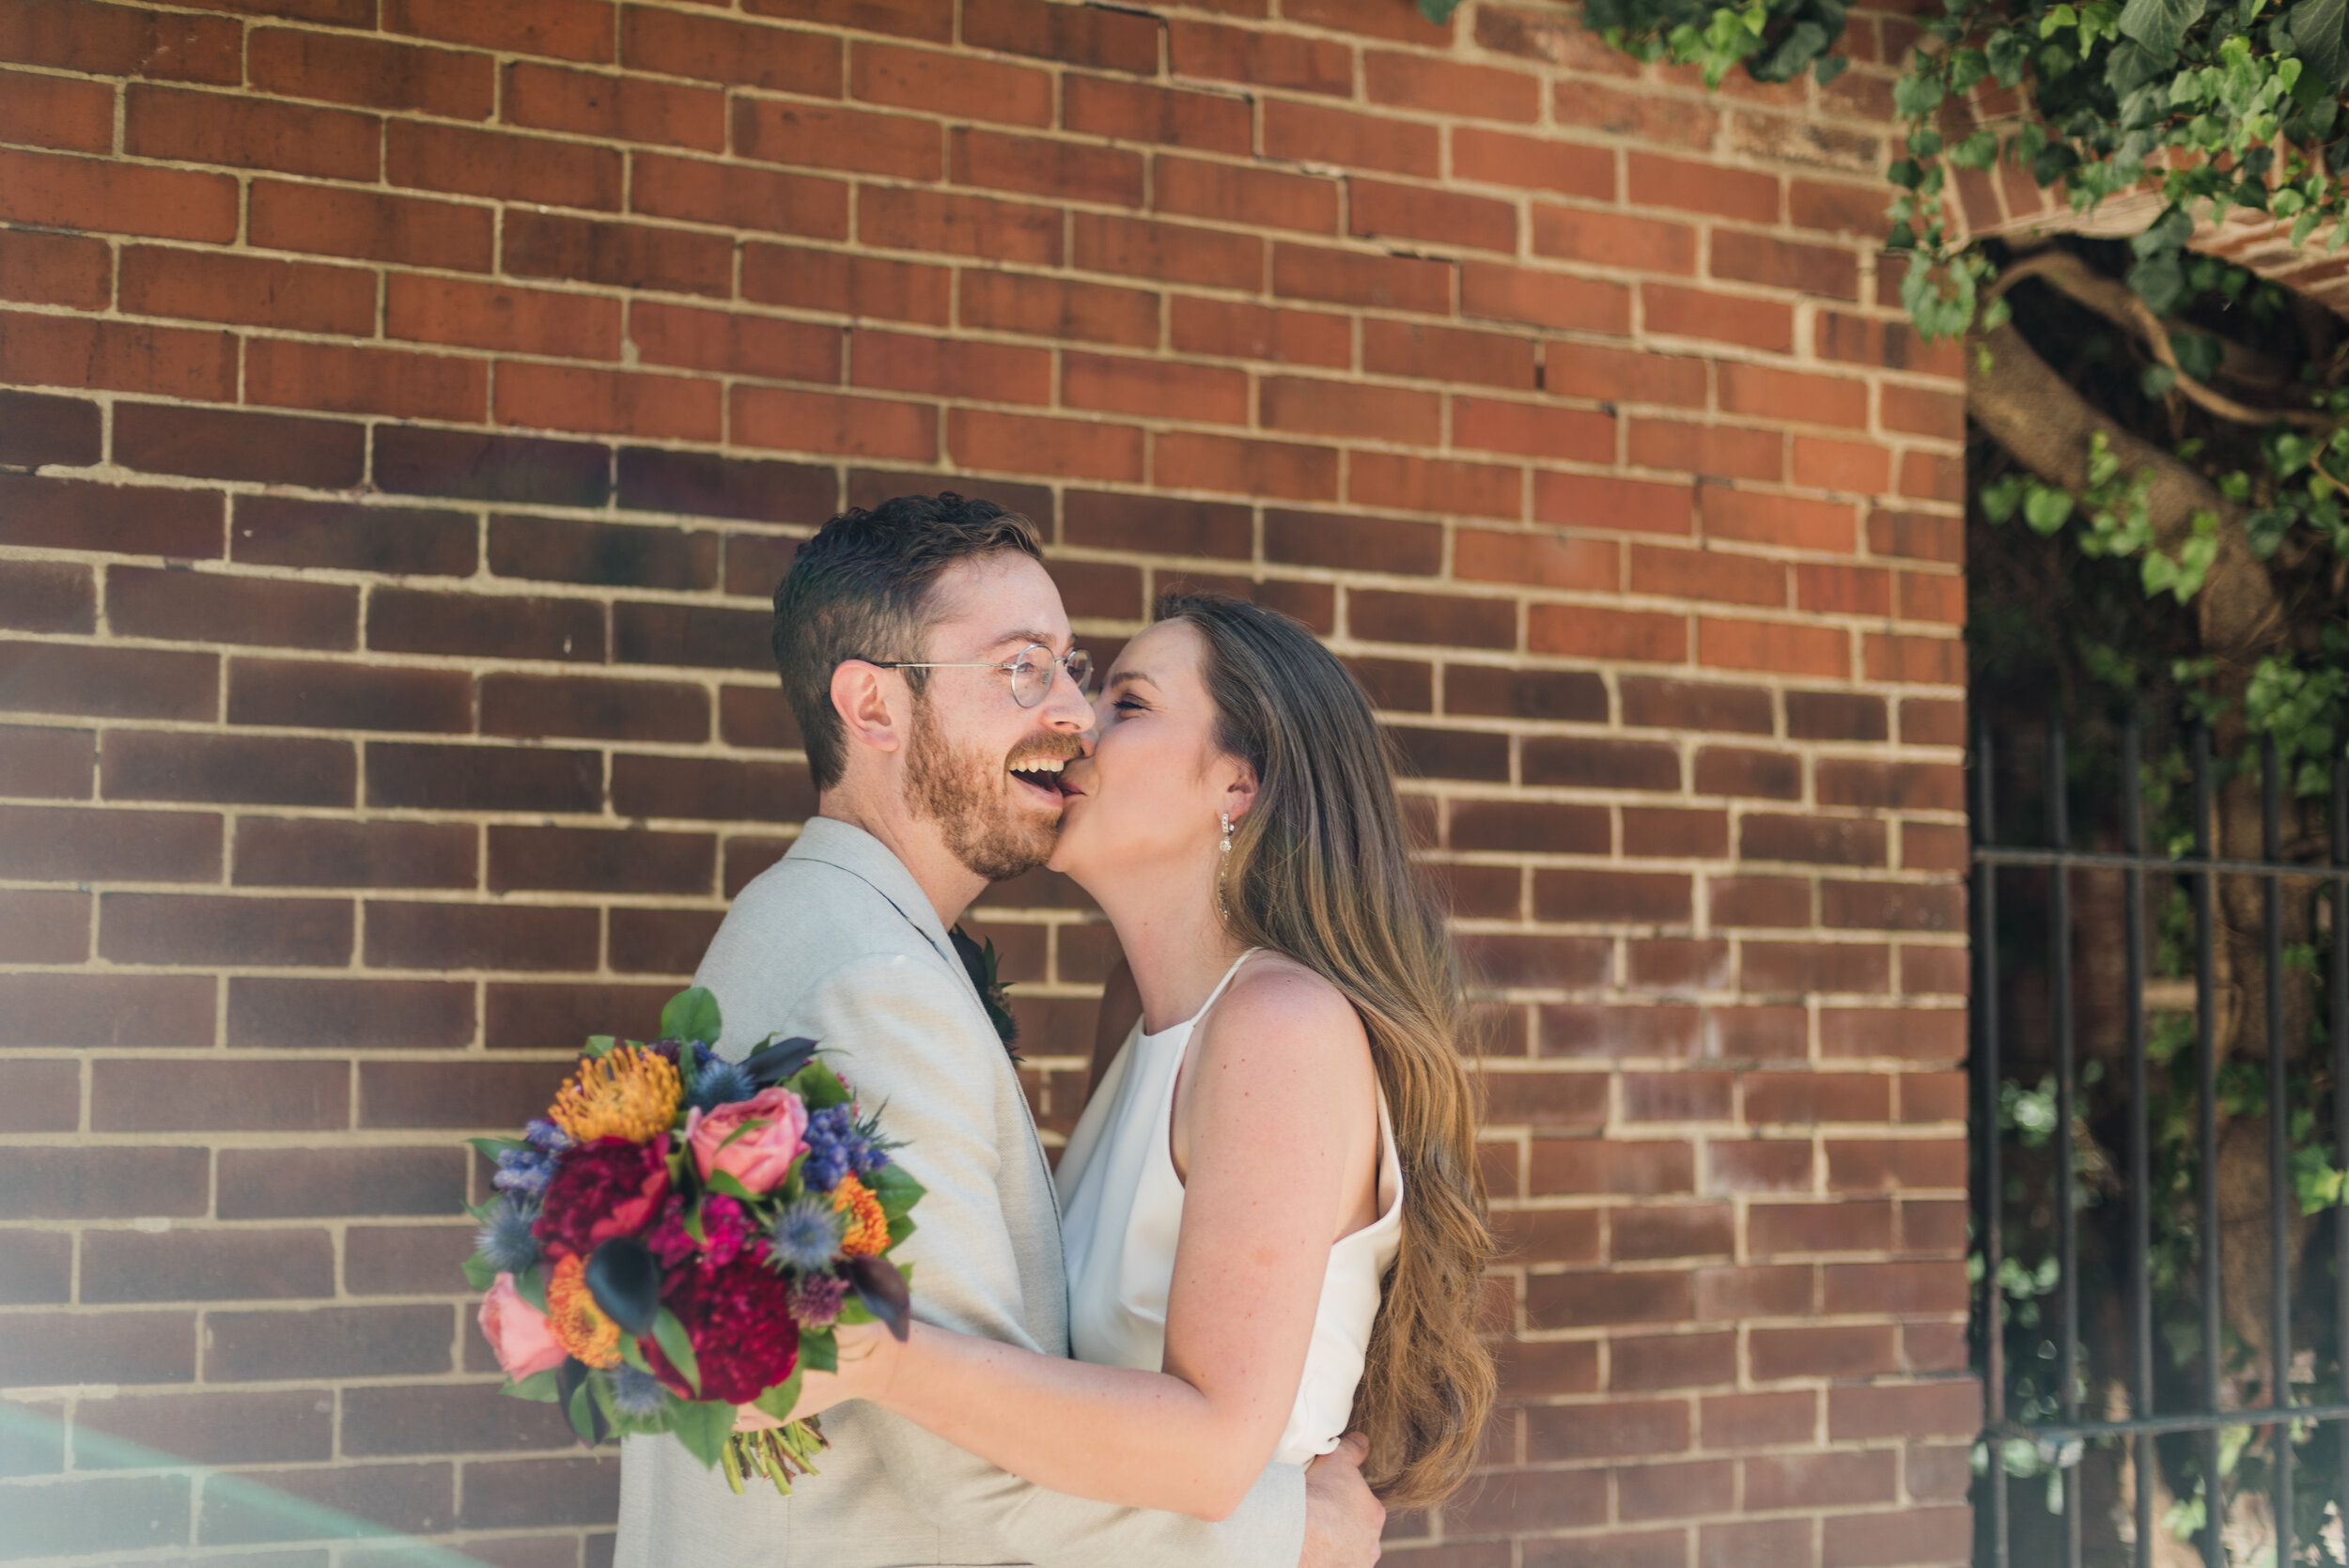 Wedding couple kissing by a brick wall with a colorful bouquet of flowers.